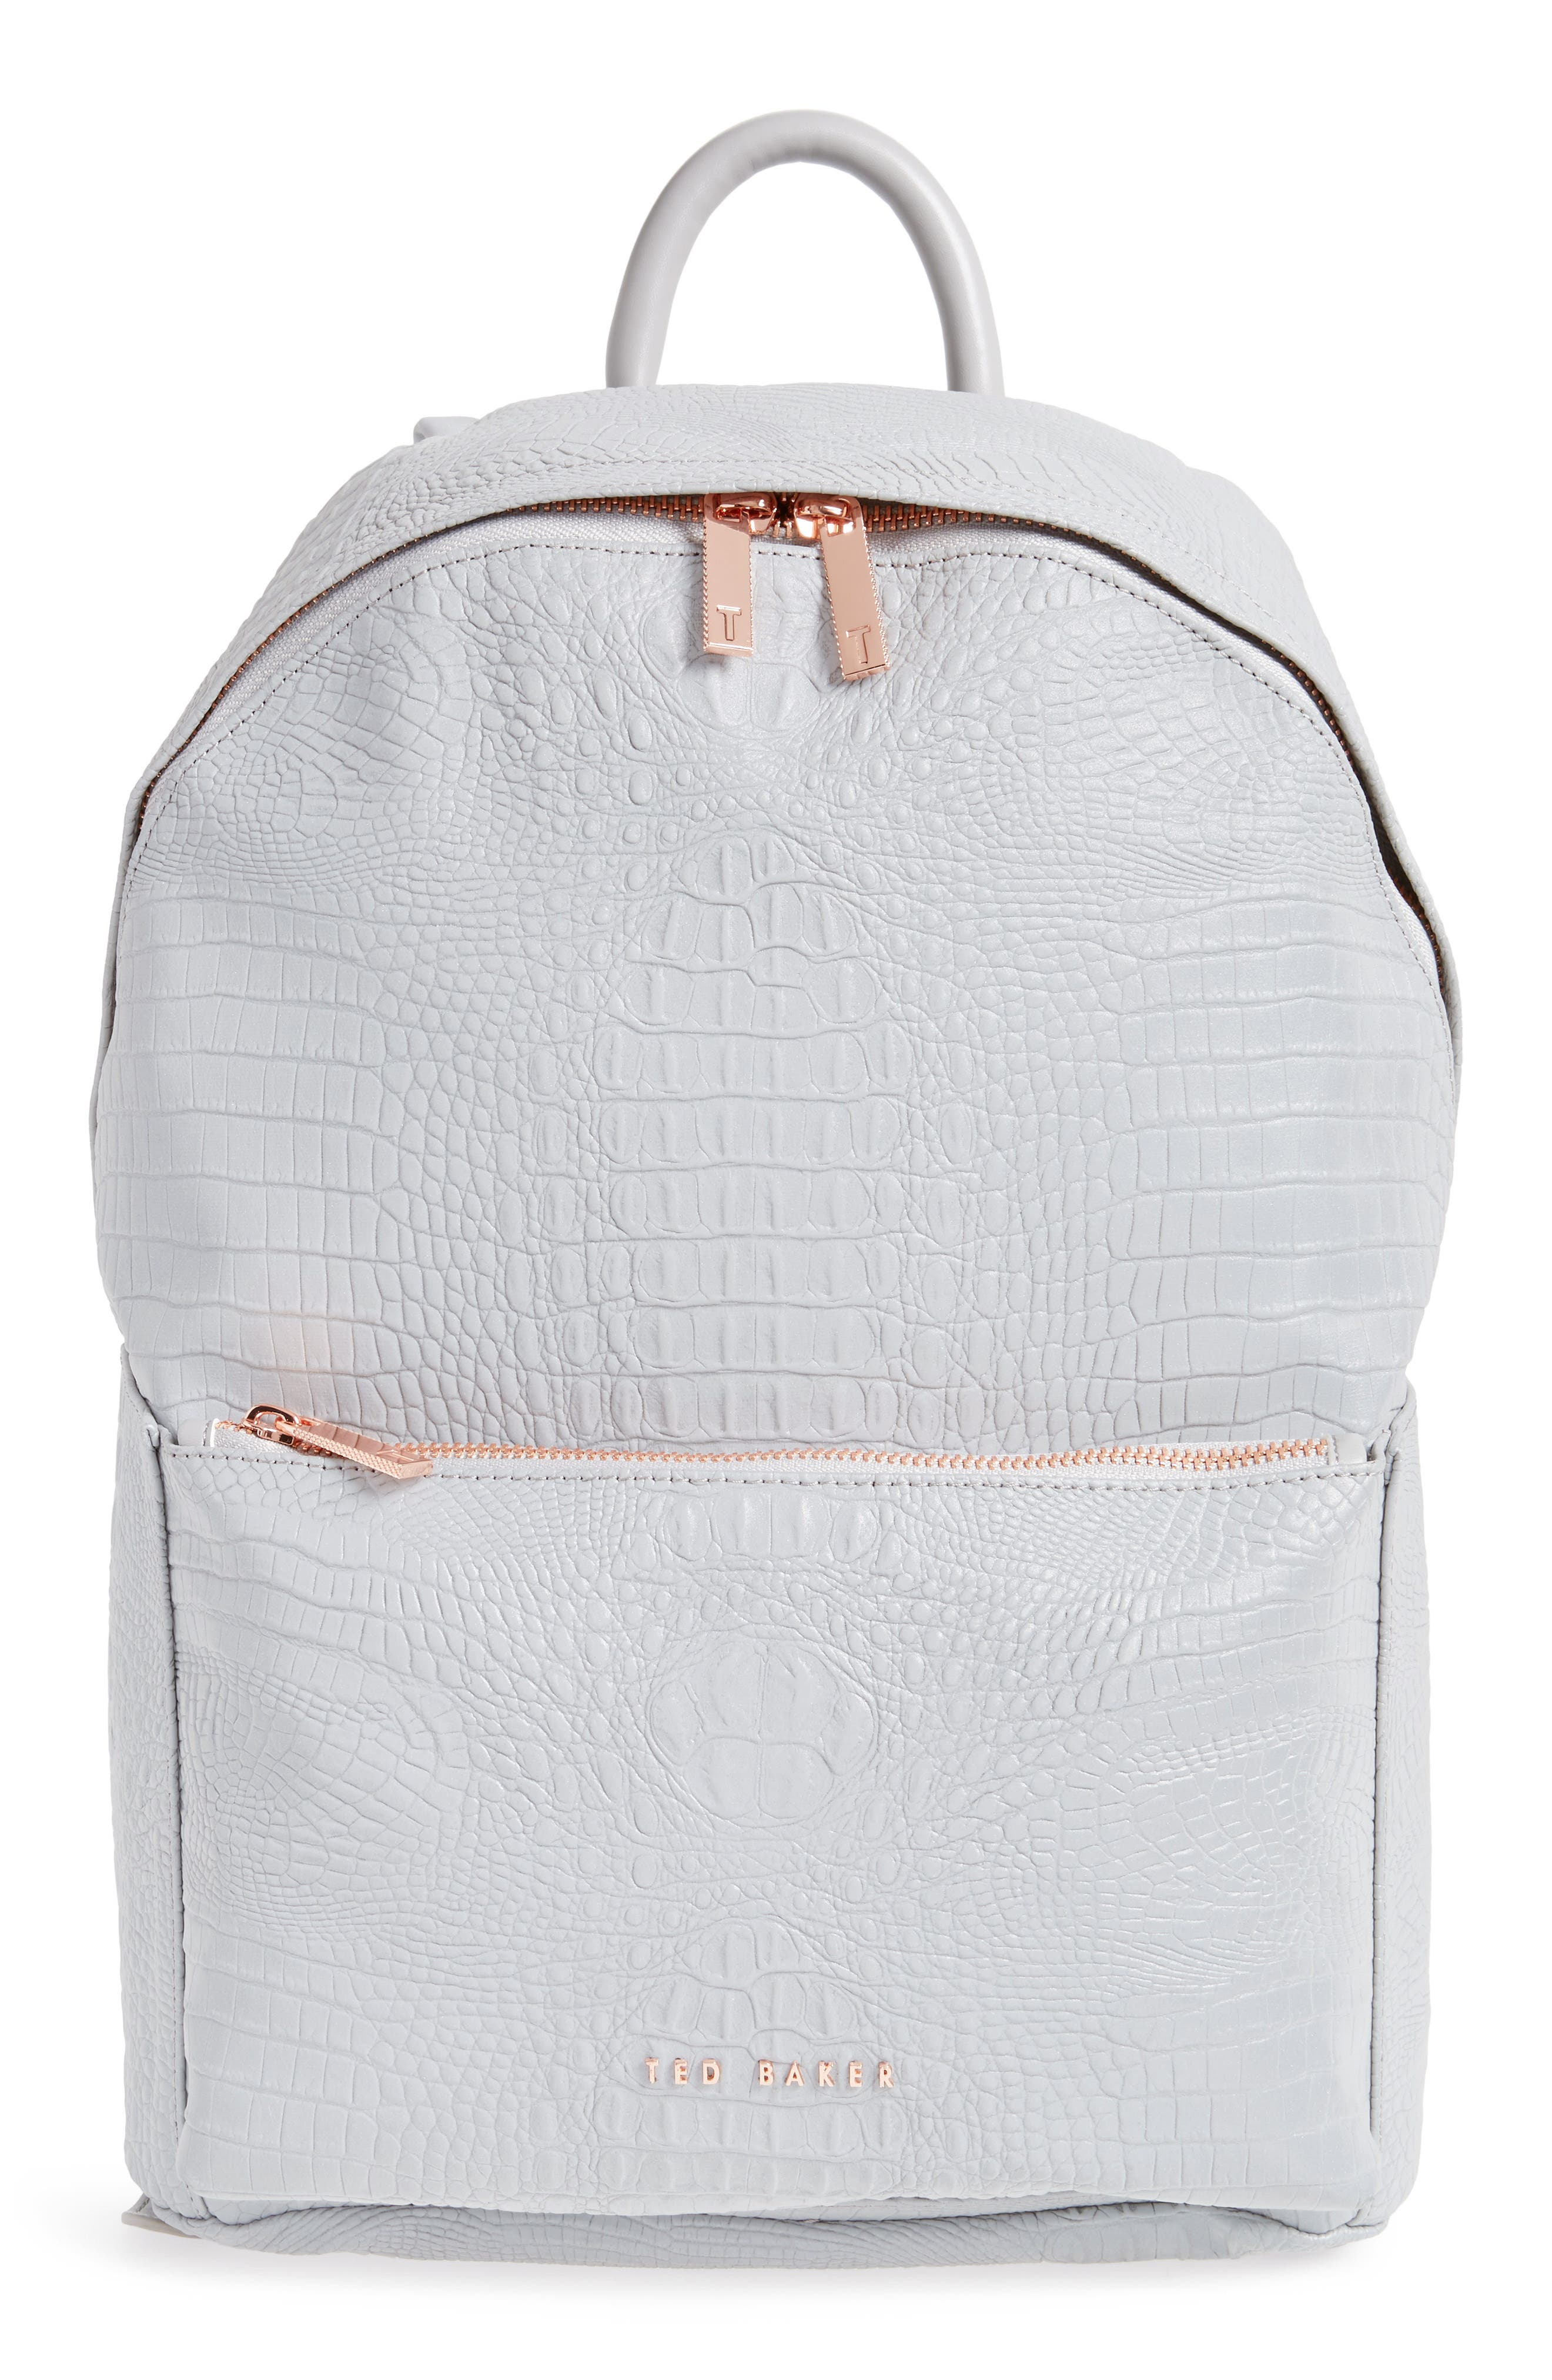 Alternate Image 1 Selected - Ted Baker London Rahri Reflective Croc Embossed Faux Leather Backpack